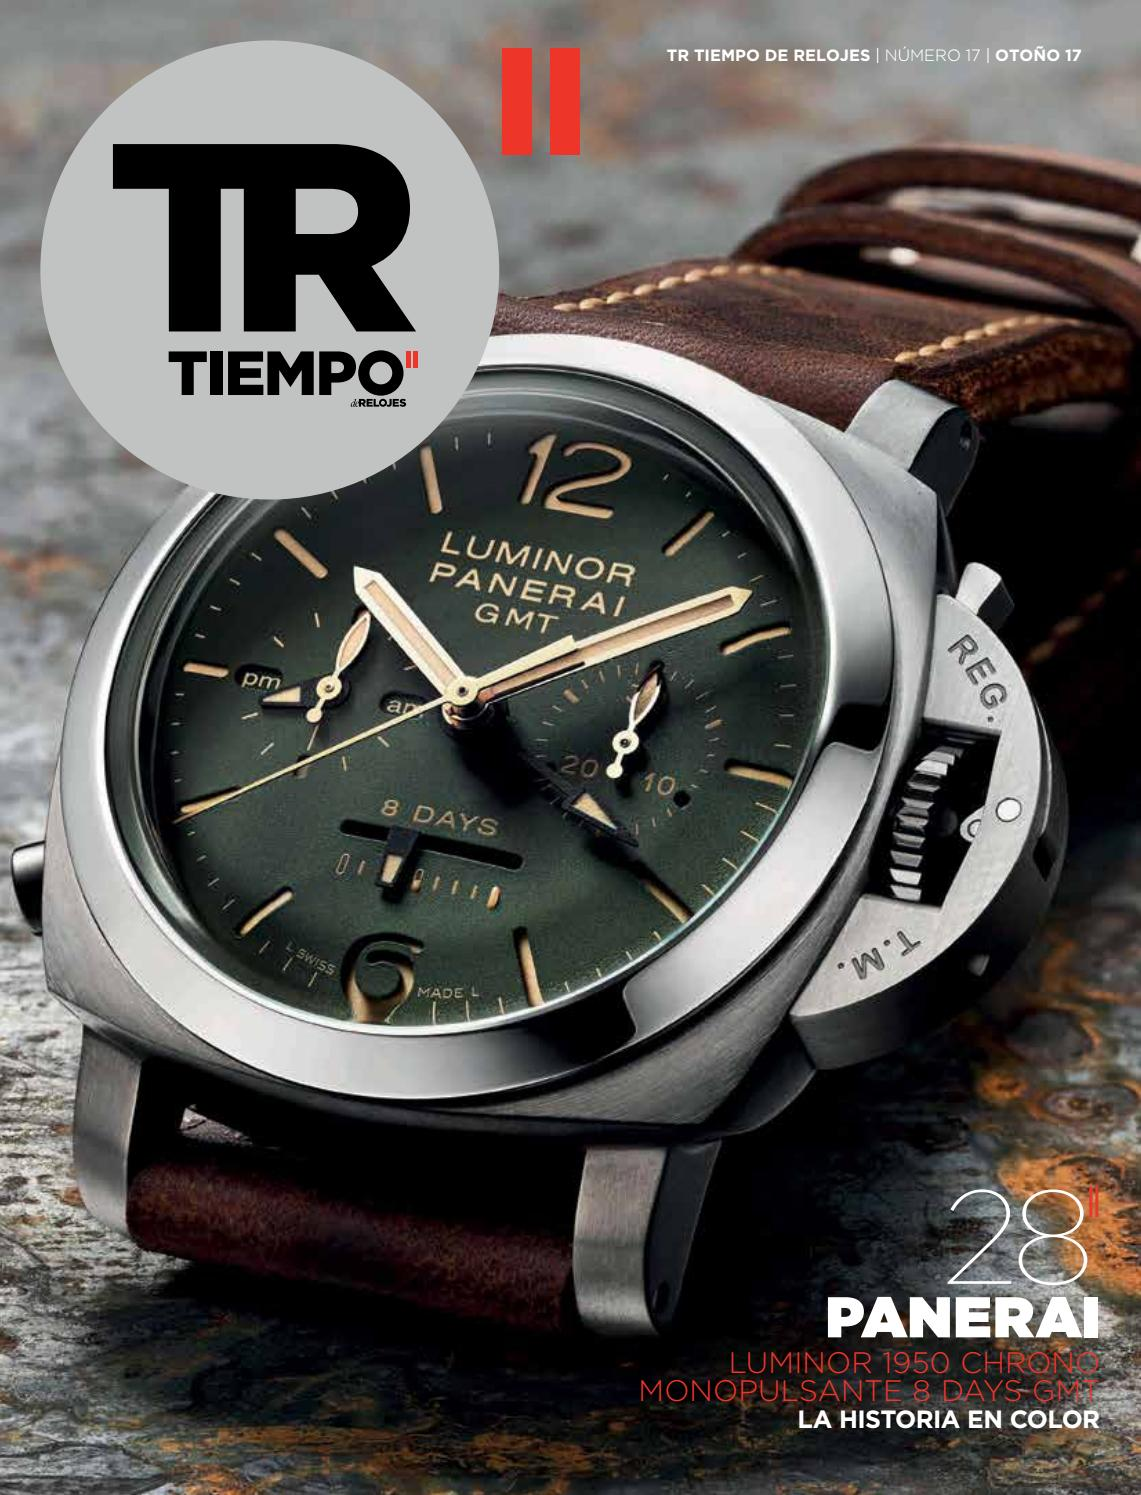 d3c056266002 Tr tiempoderelojes numero 17 by Ed-Tourbillon.Spain - issuu